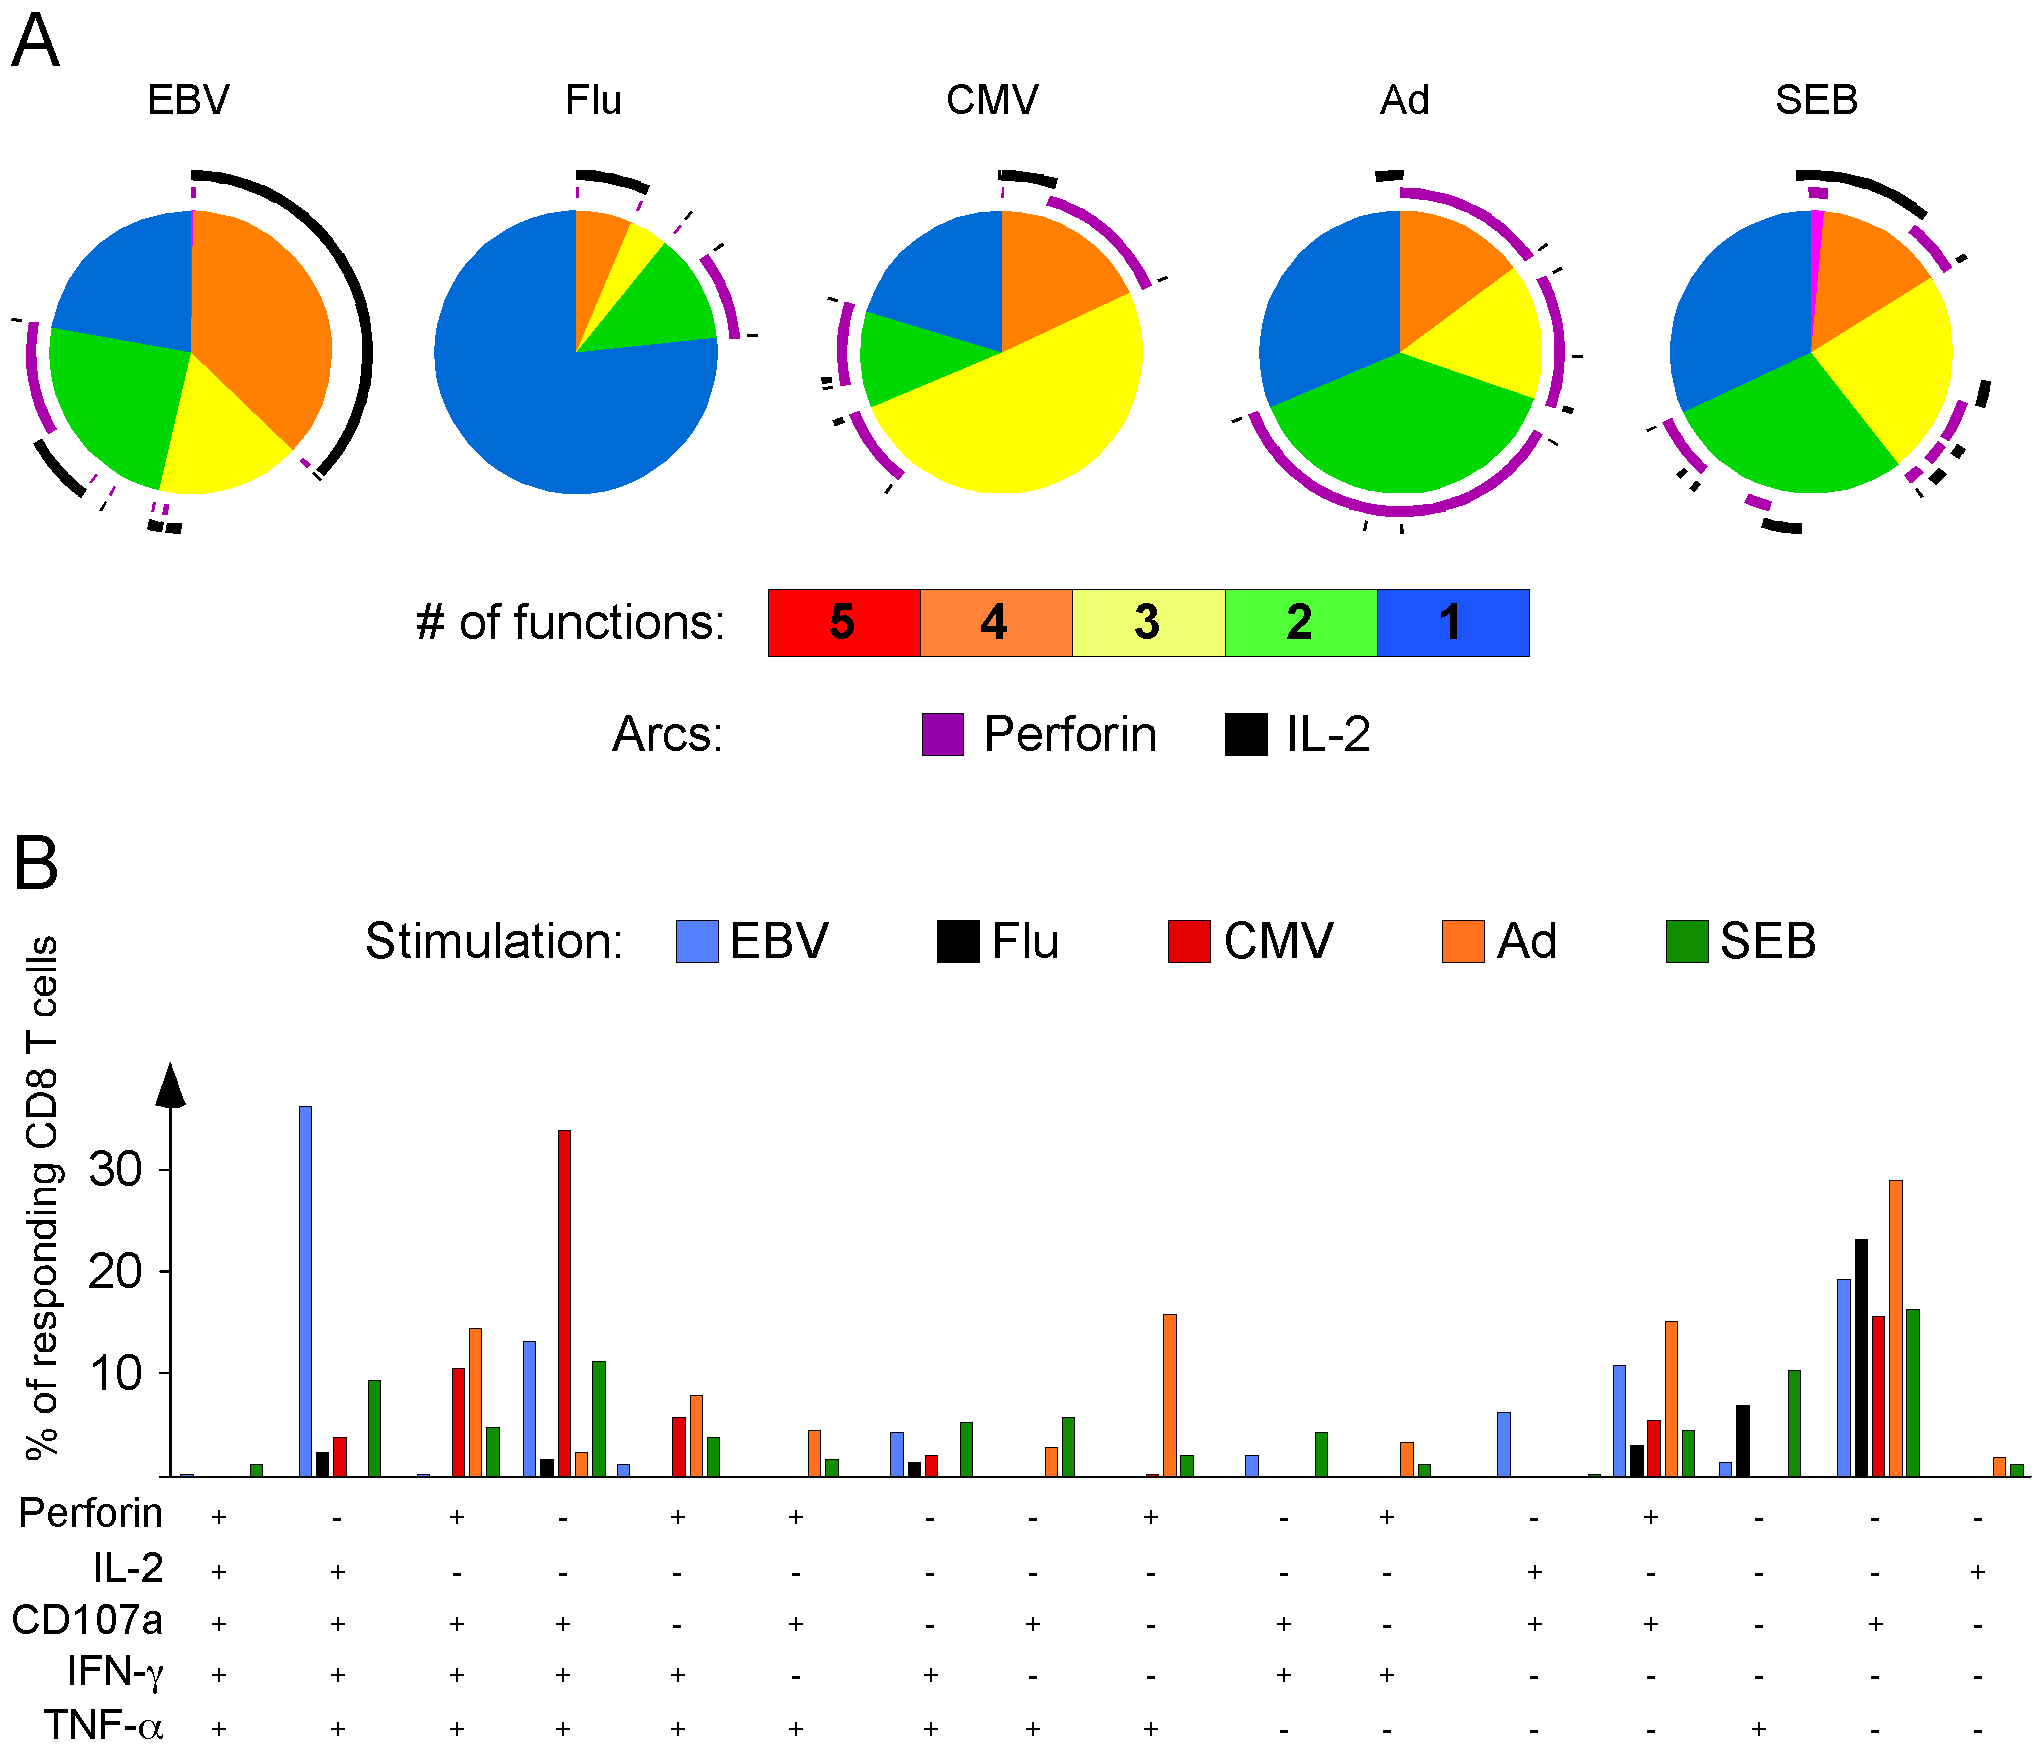 Rapid perforin upregulation and IL-2 production define distinct functional subsets for each model virus.